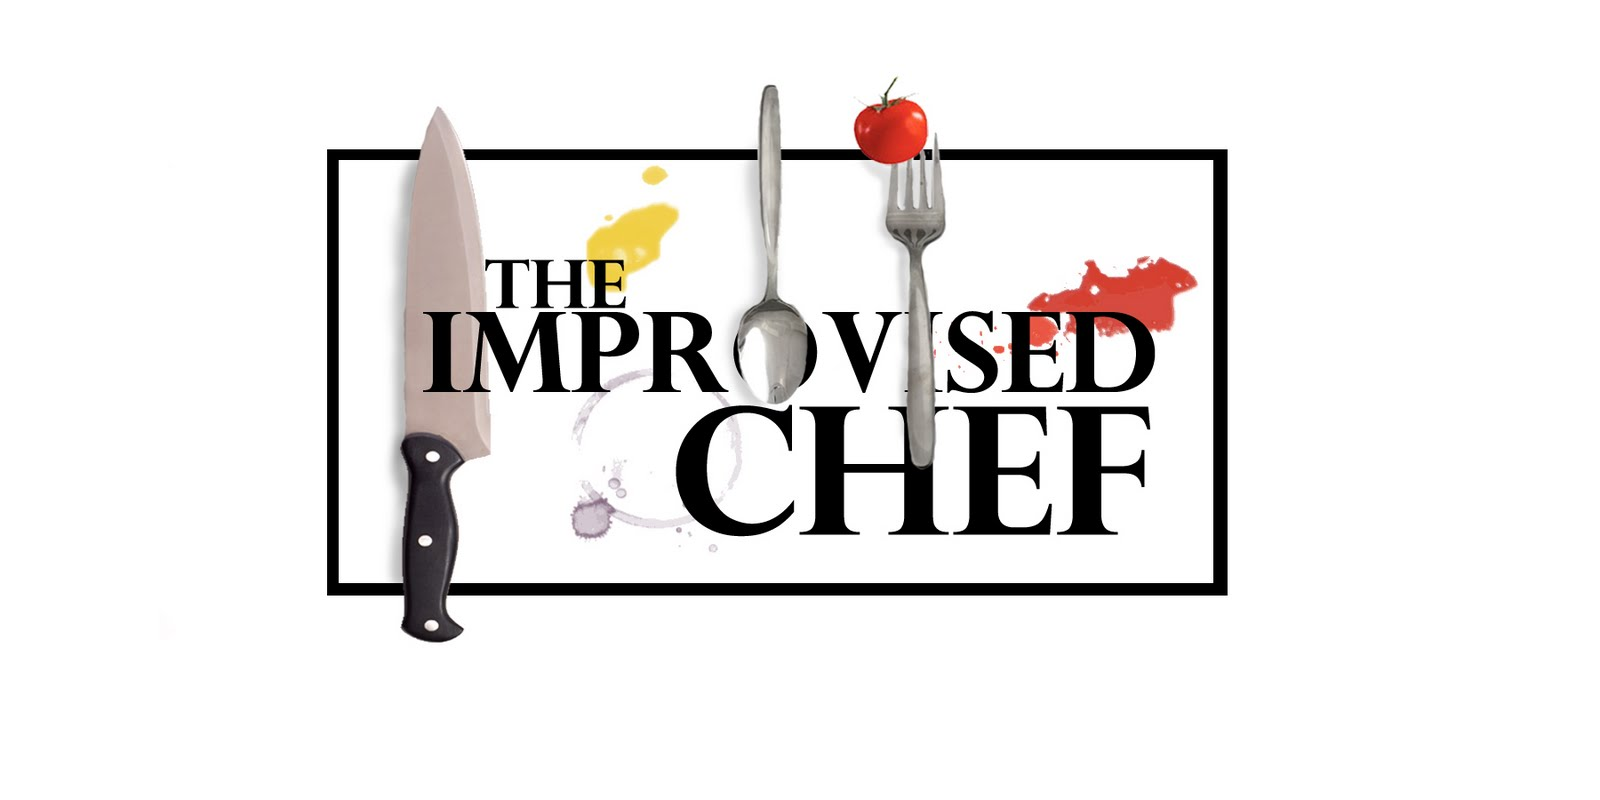 The Improvised Chef